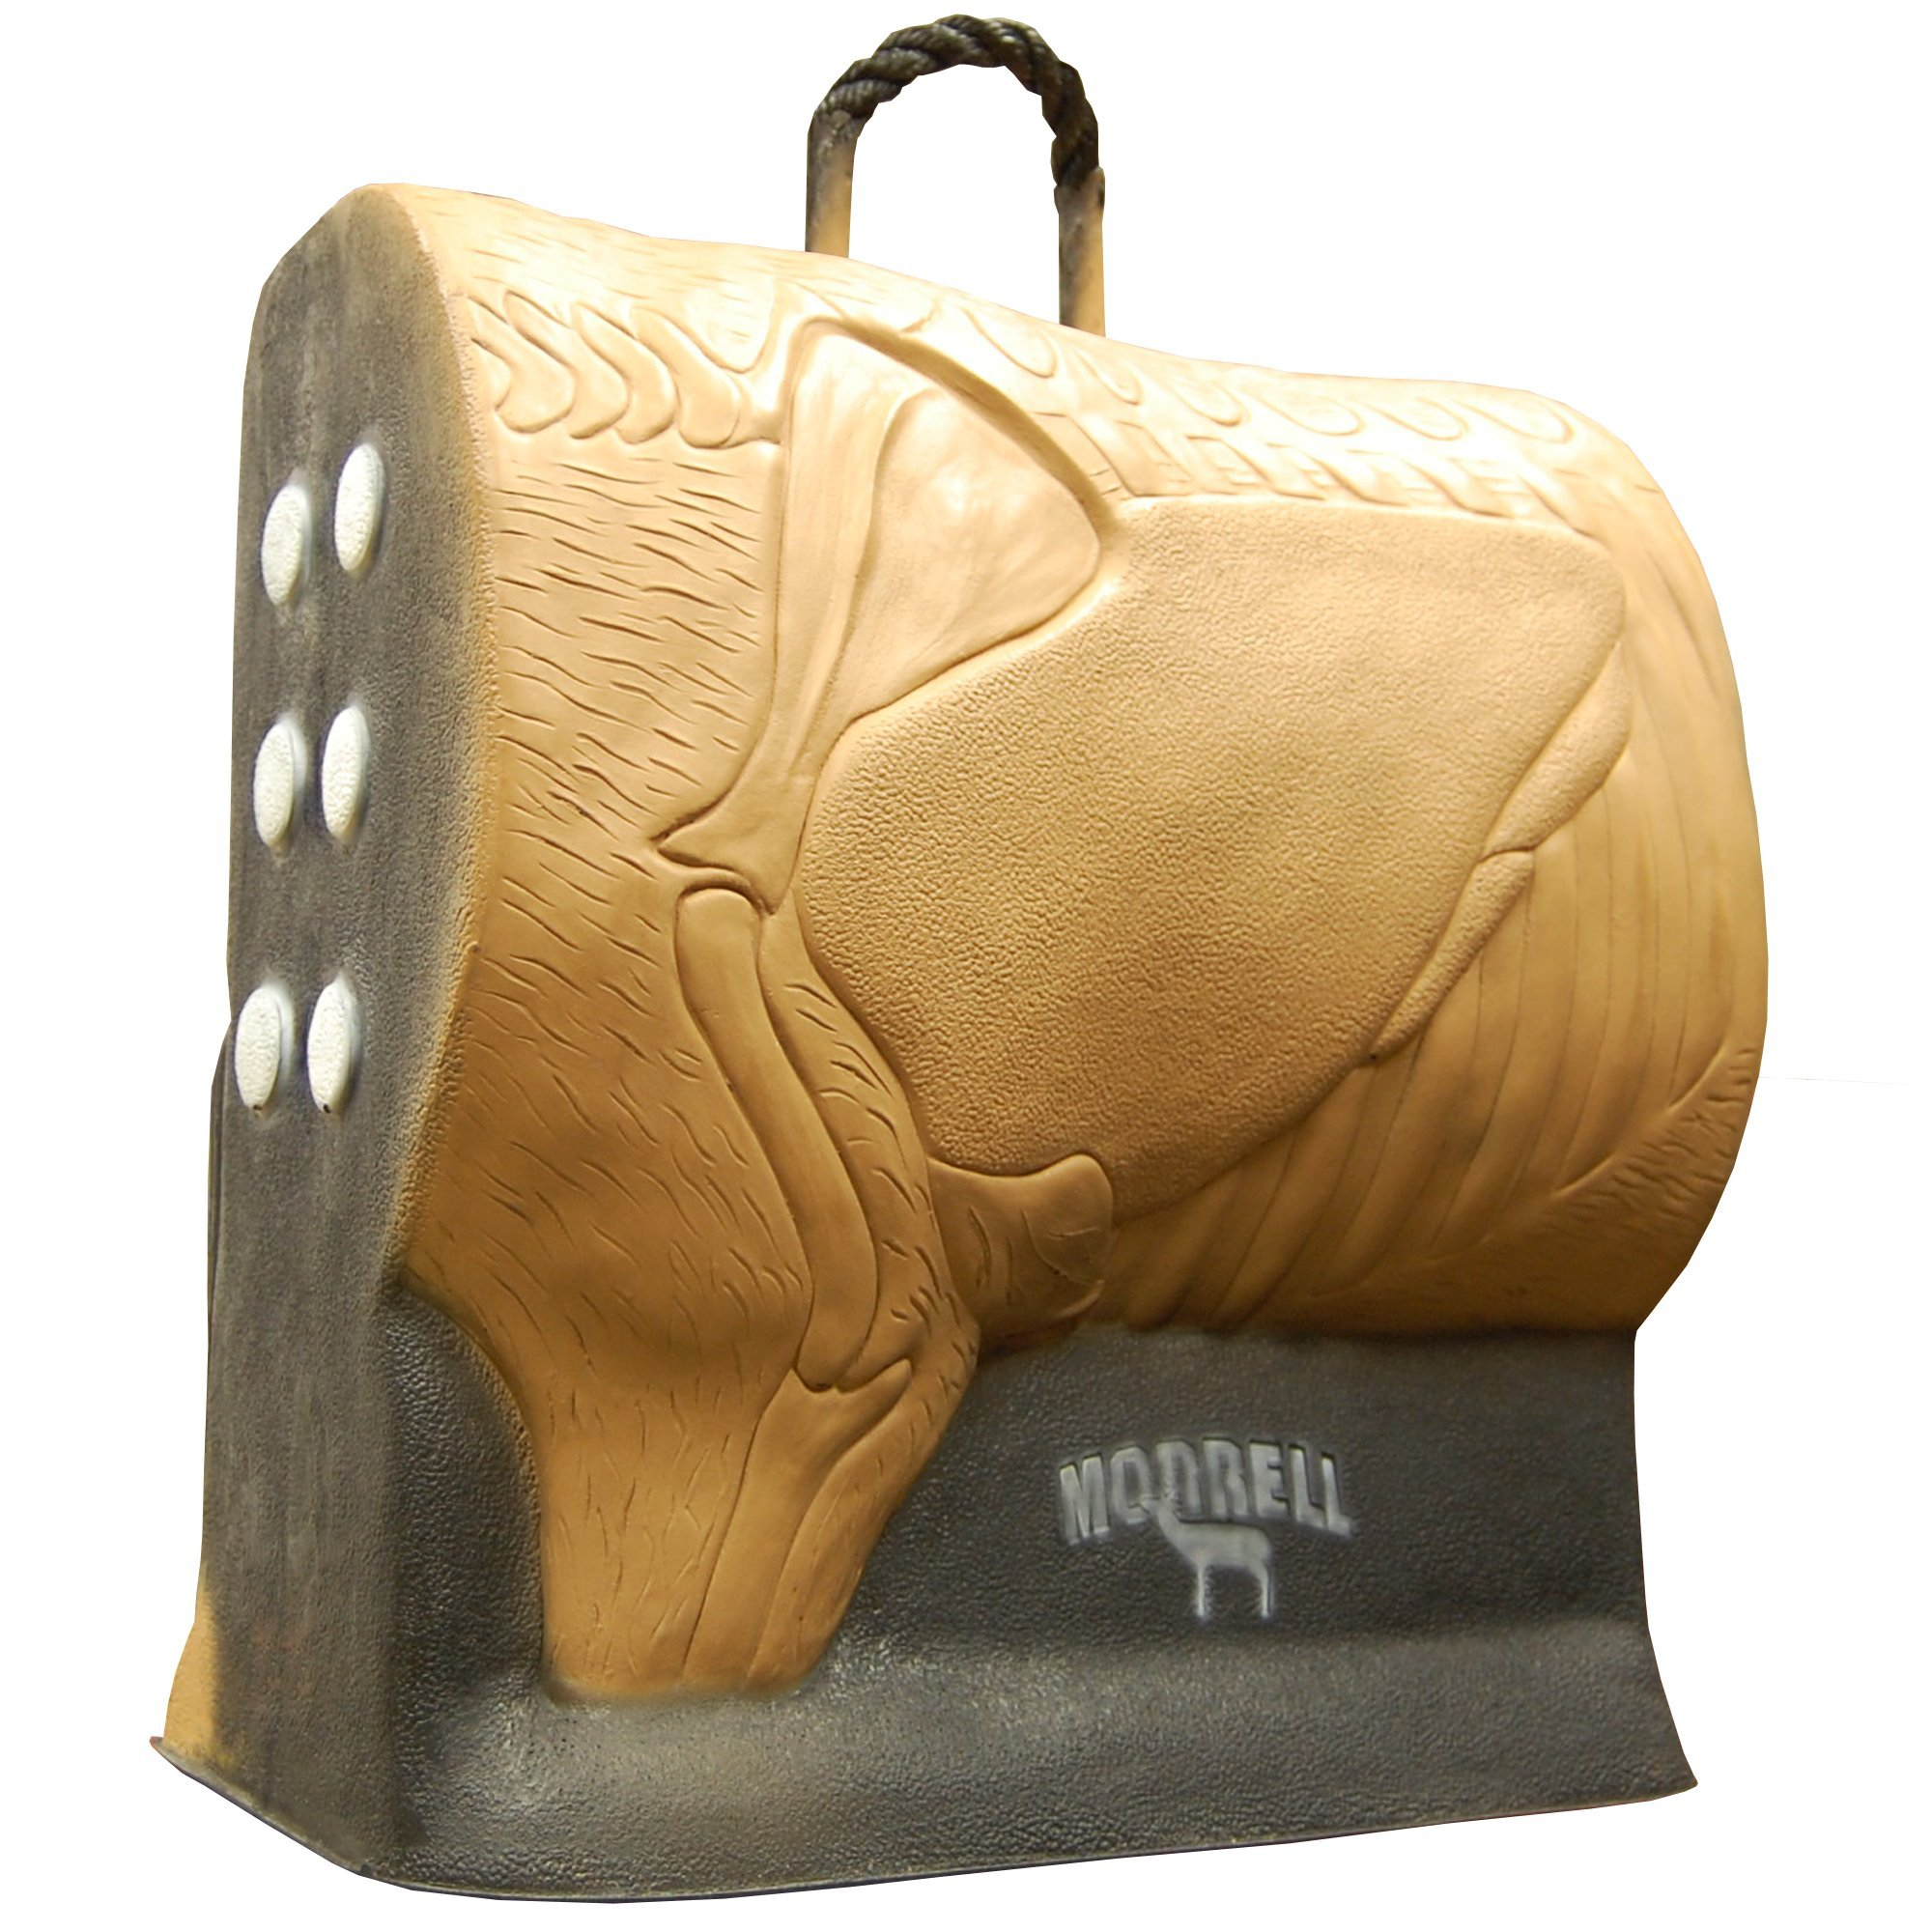 Morrell Back to Back Combo Solid Foam Archery Target - for Field Tips or Broadheads by Morrell